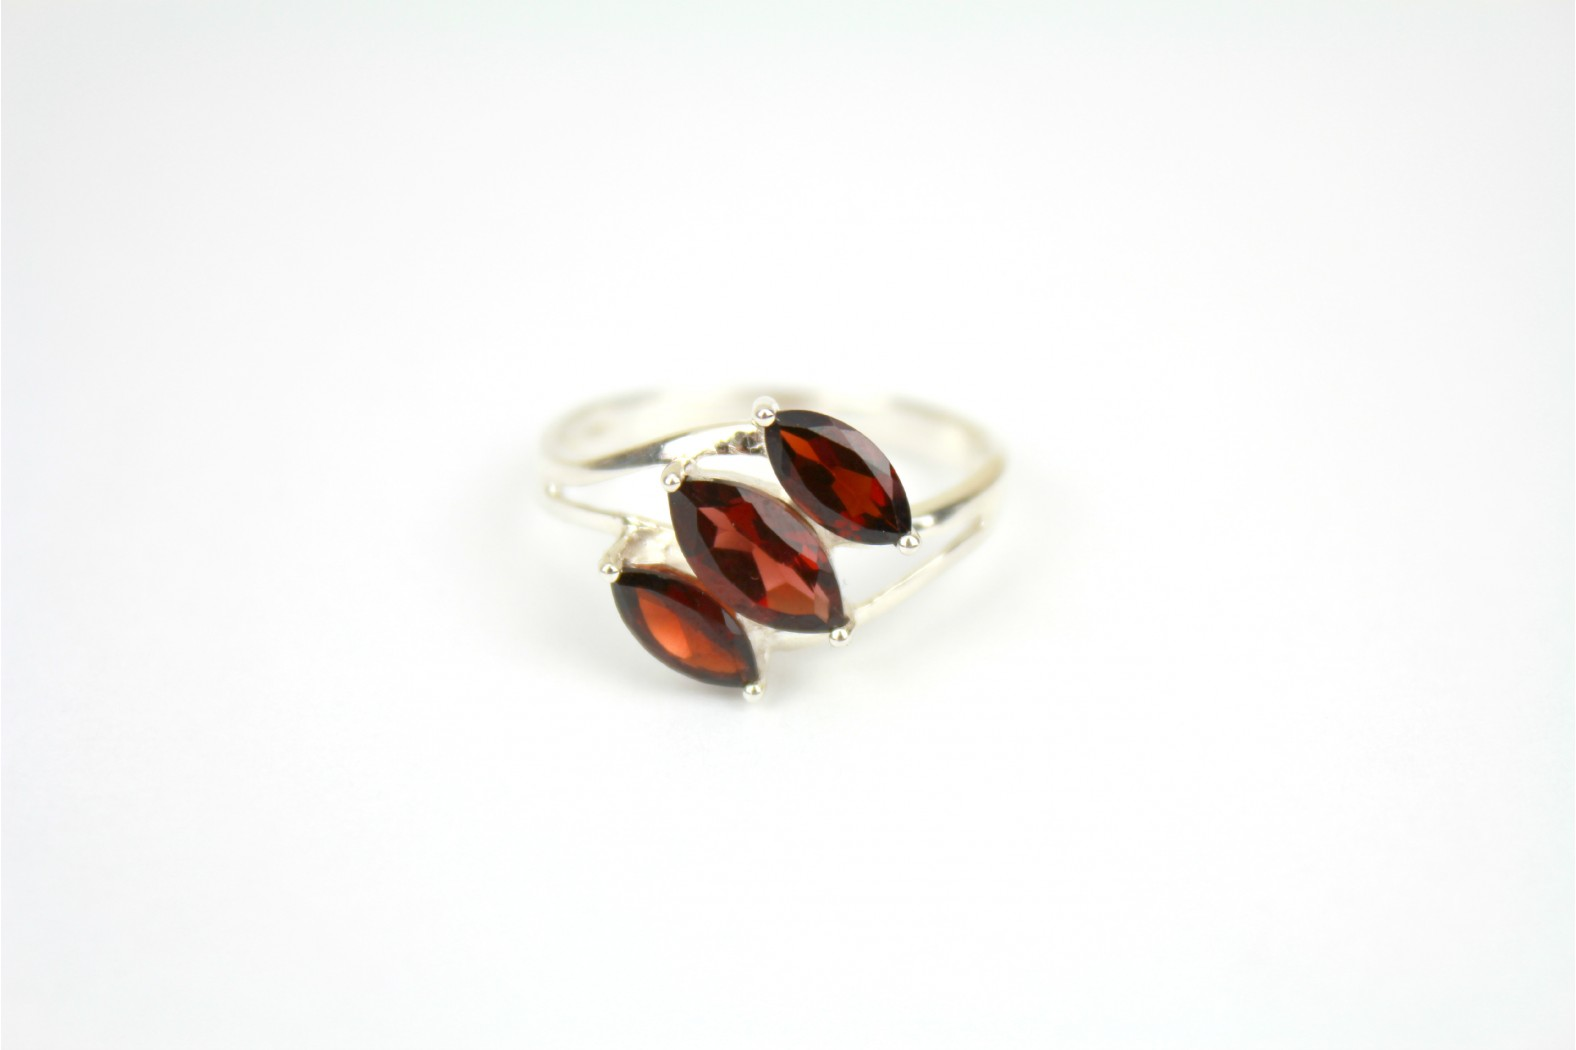 Three faceted Garnet diametrically set on silver size 10 or T. DELIVERY 10 WORKING DAYS